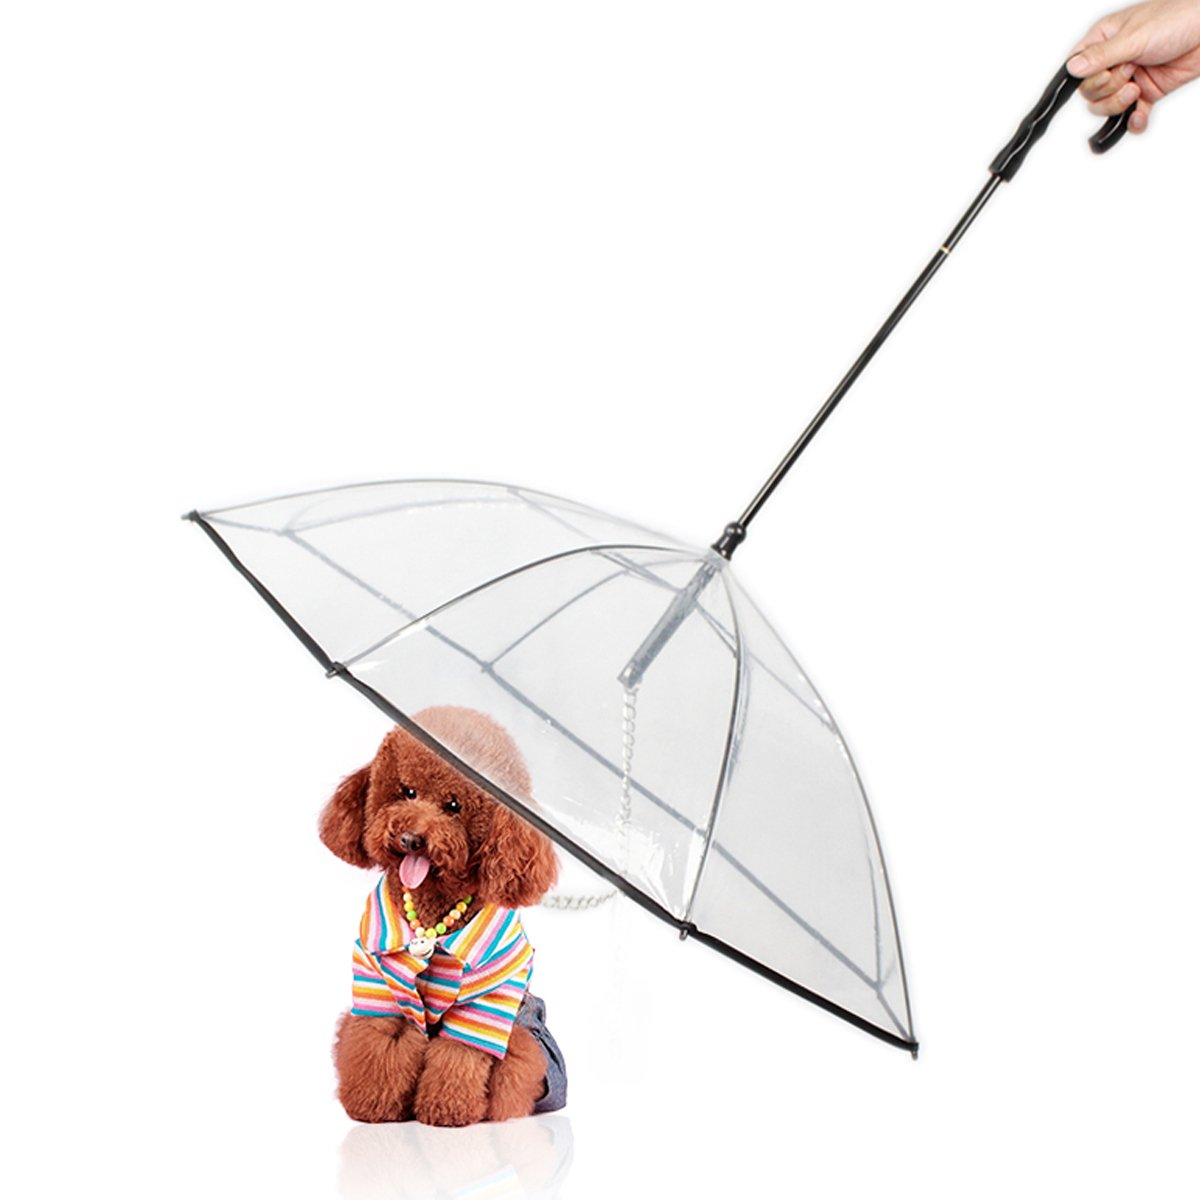 Belovelife Dog's Transparent Folding Pet Umbrella with Leash Protecting From Rain Snow for Puppy